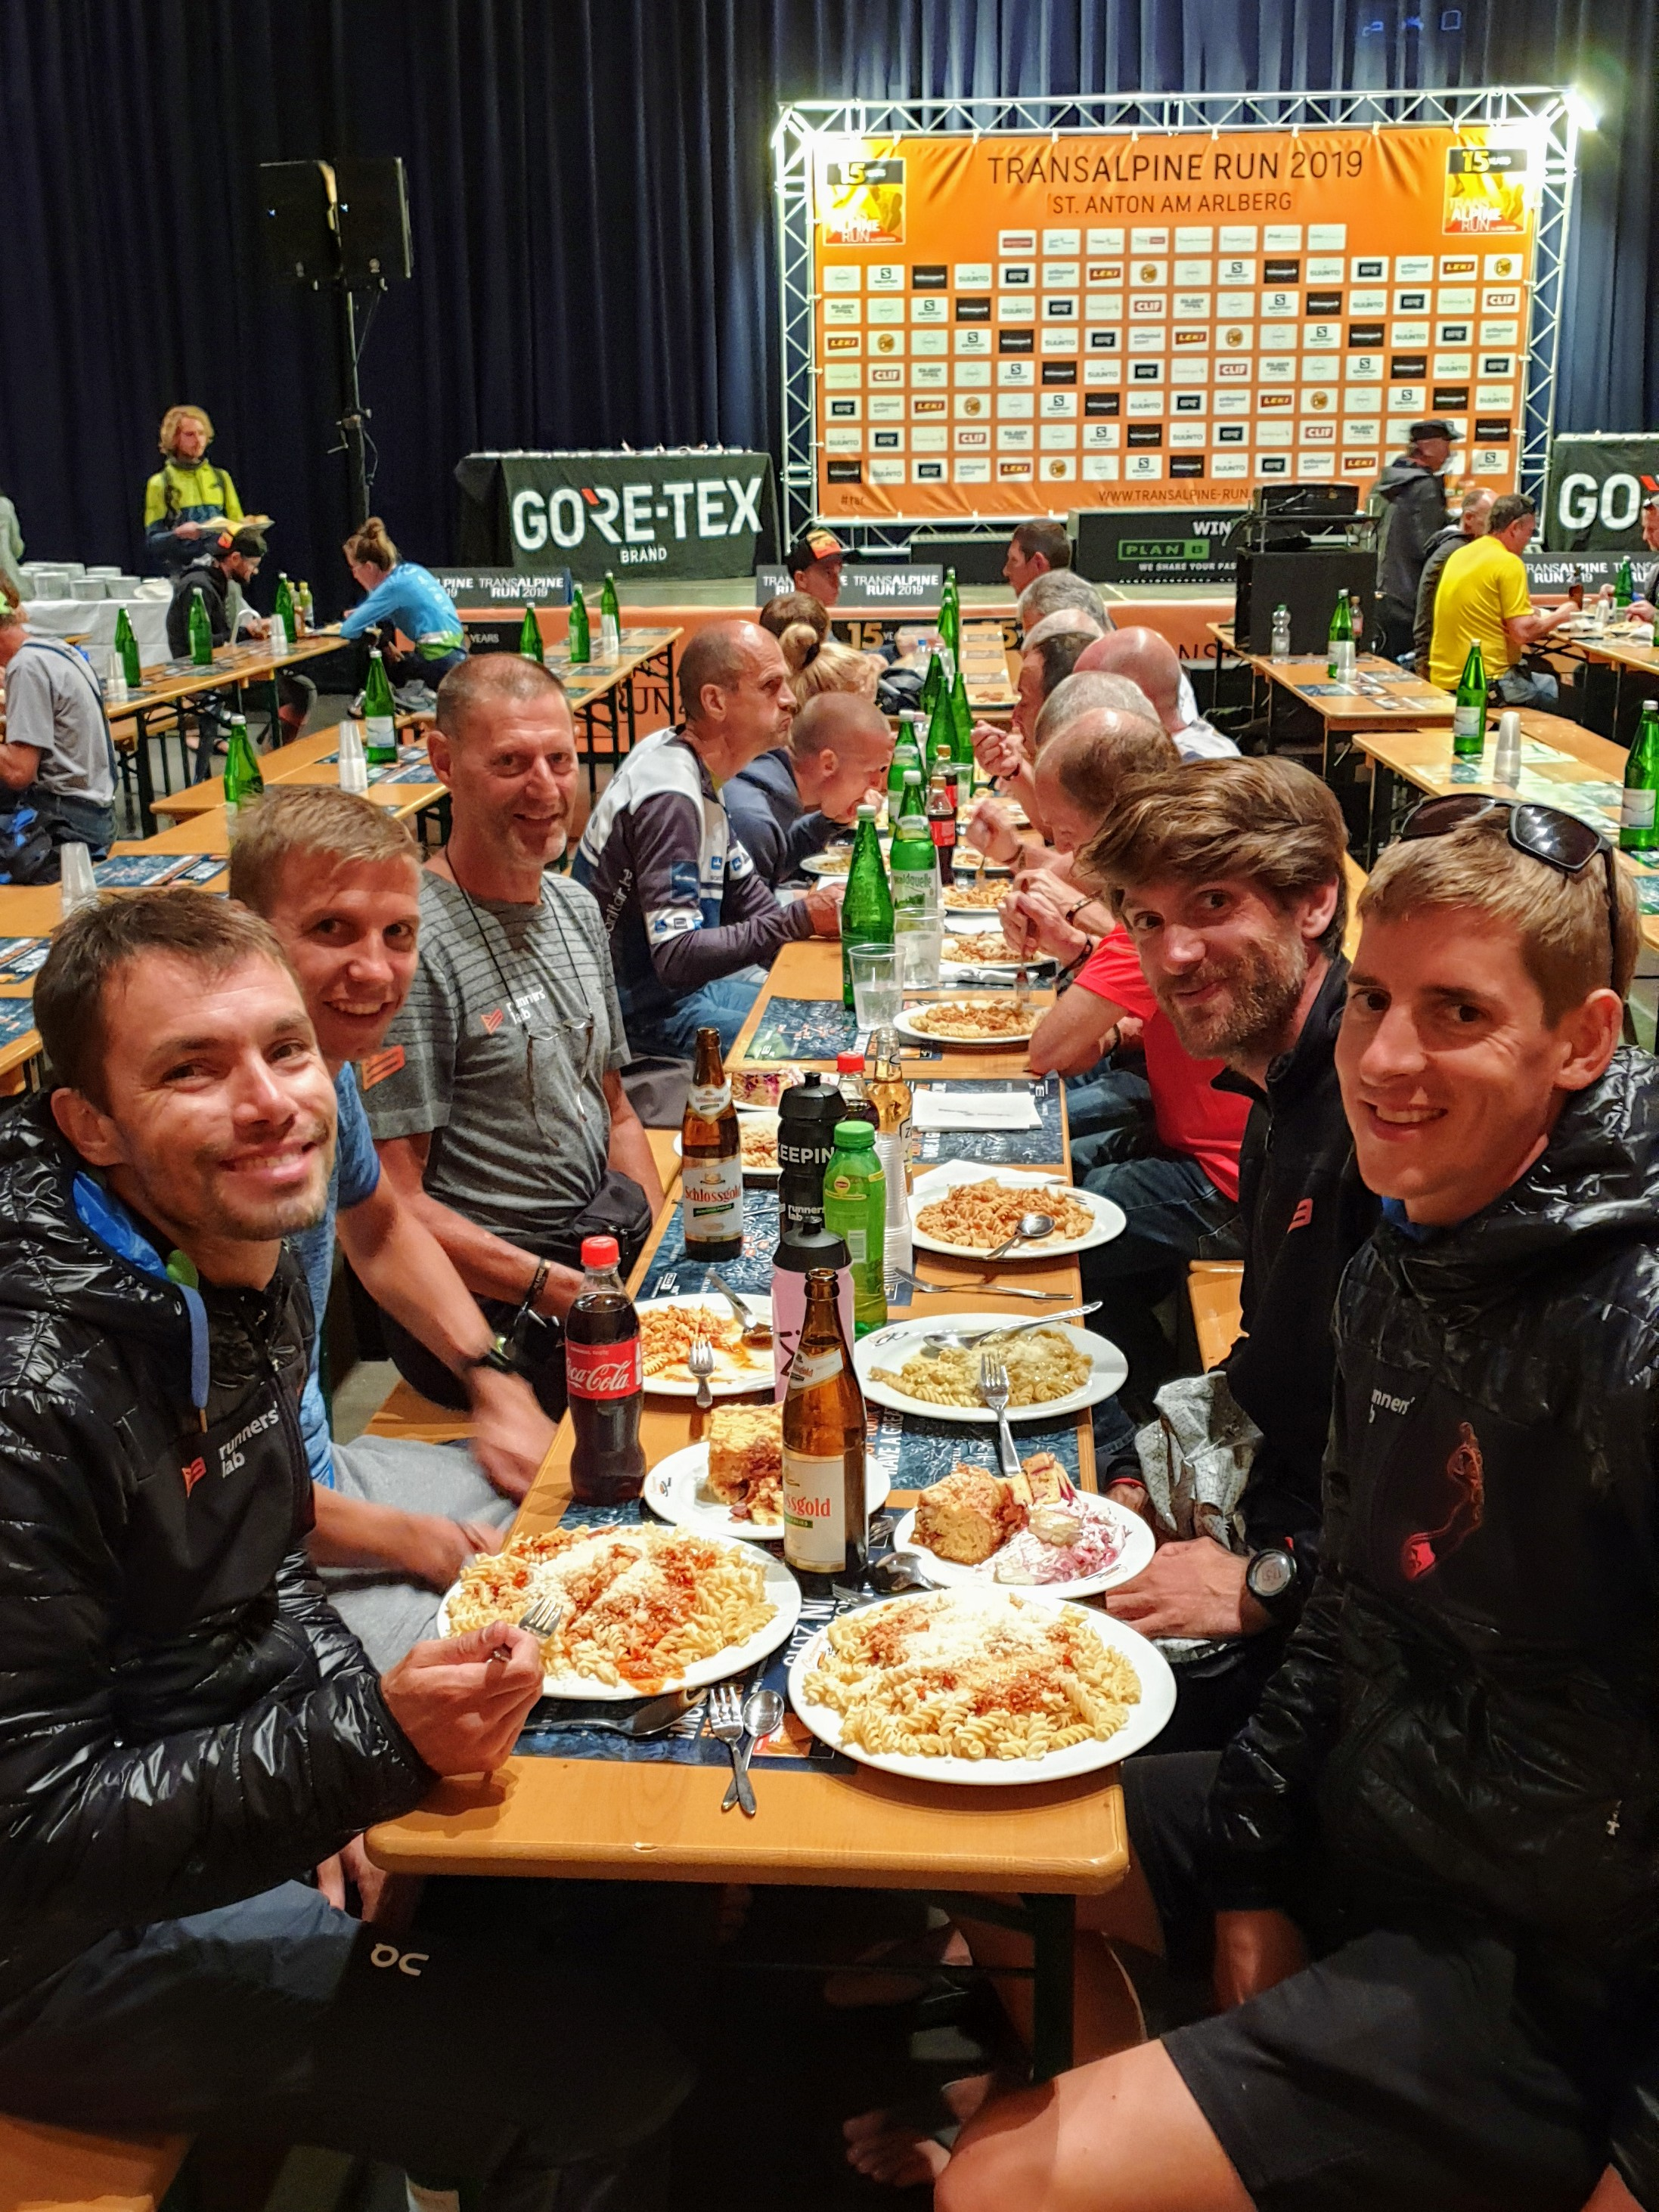 team_runners_lab_transalpine_run_2019_pasta_party